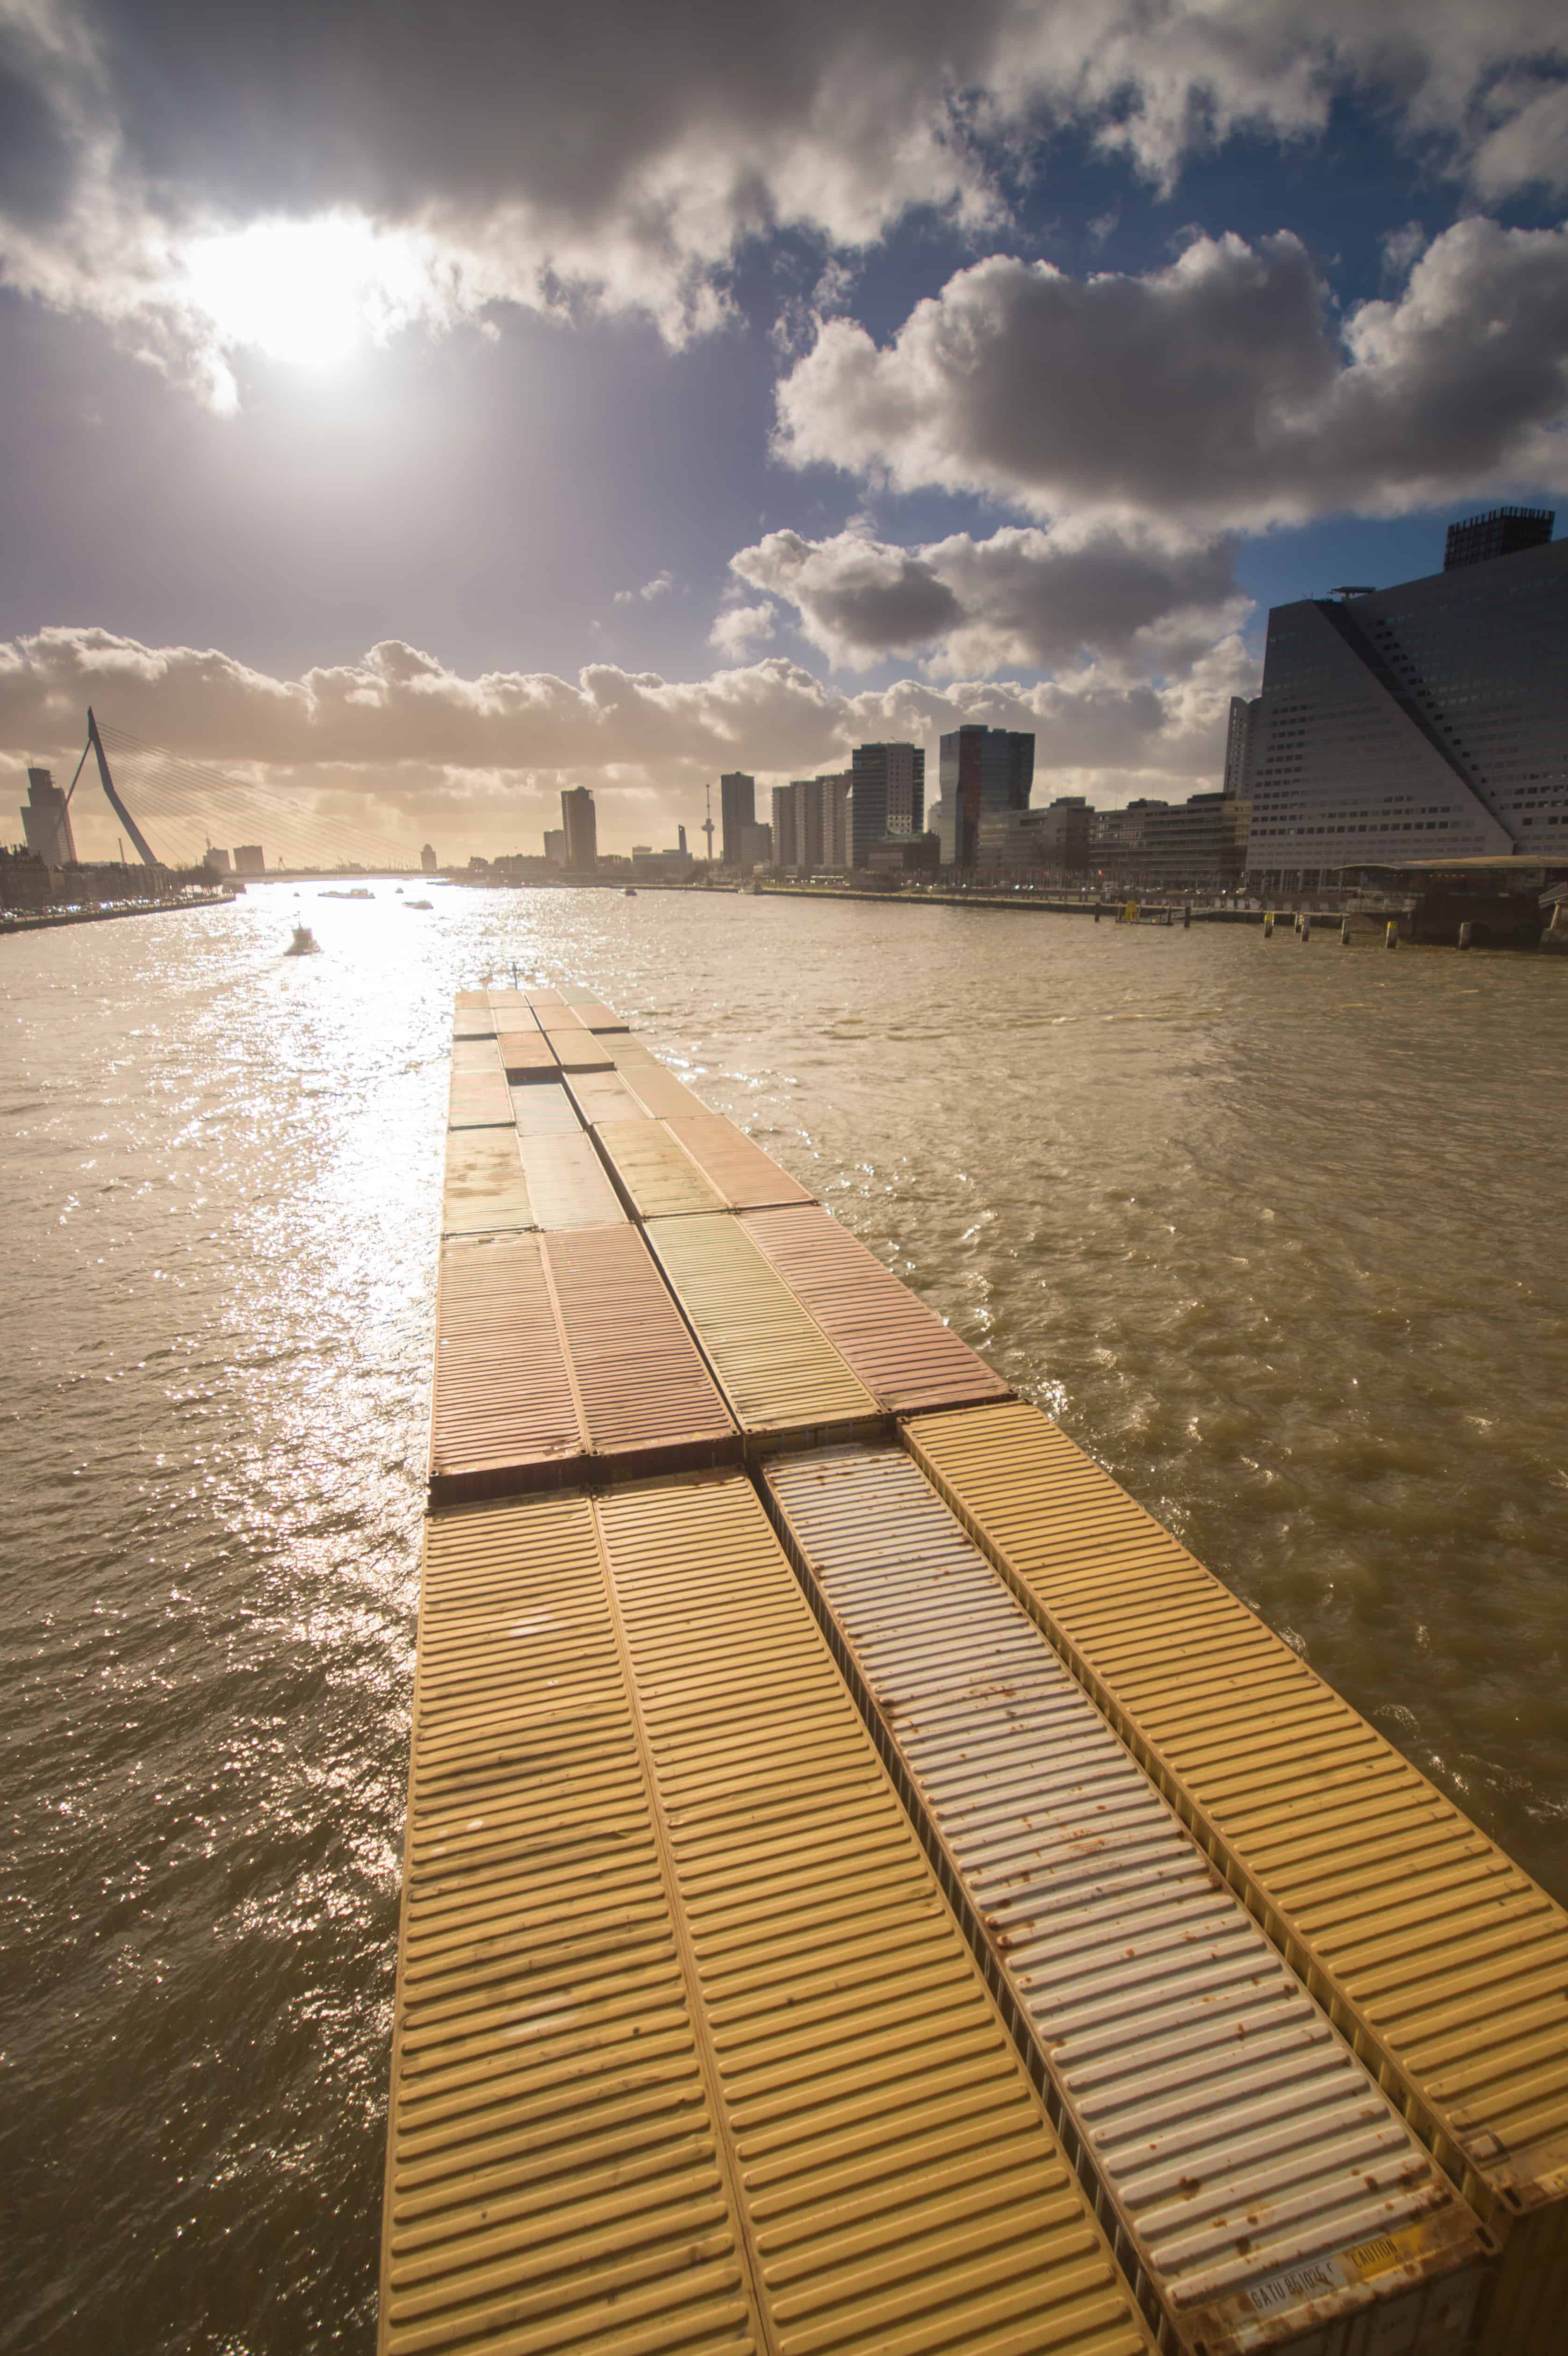 Container barge entering the city of Rotterdam